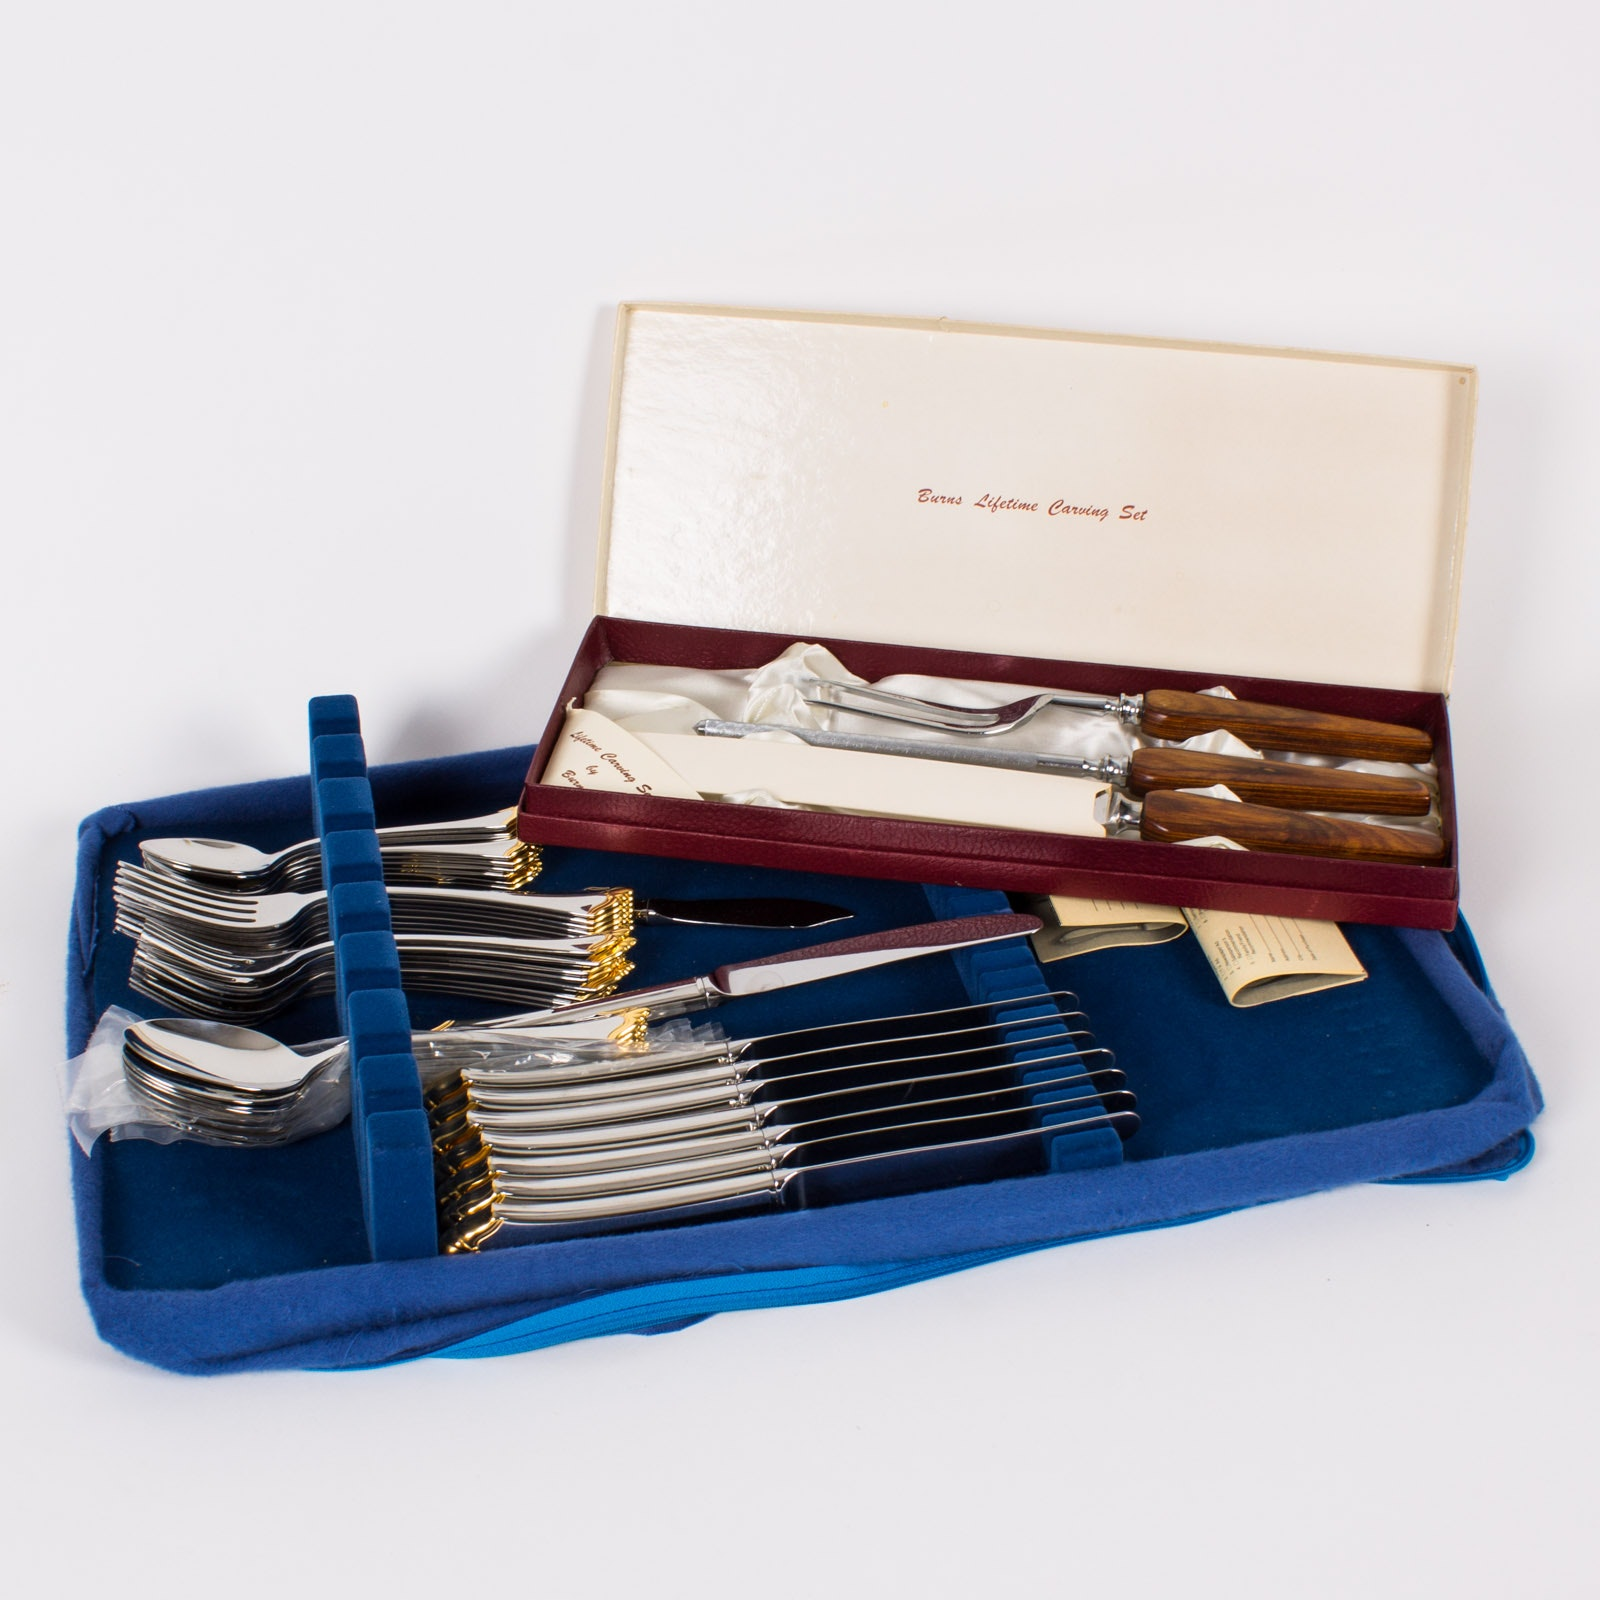 "Community by Oneida ""Golden Kenwood"" Stainless Steel Flatware With Burns Lifetime Carving Set"